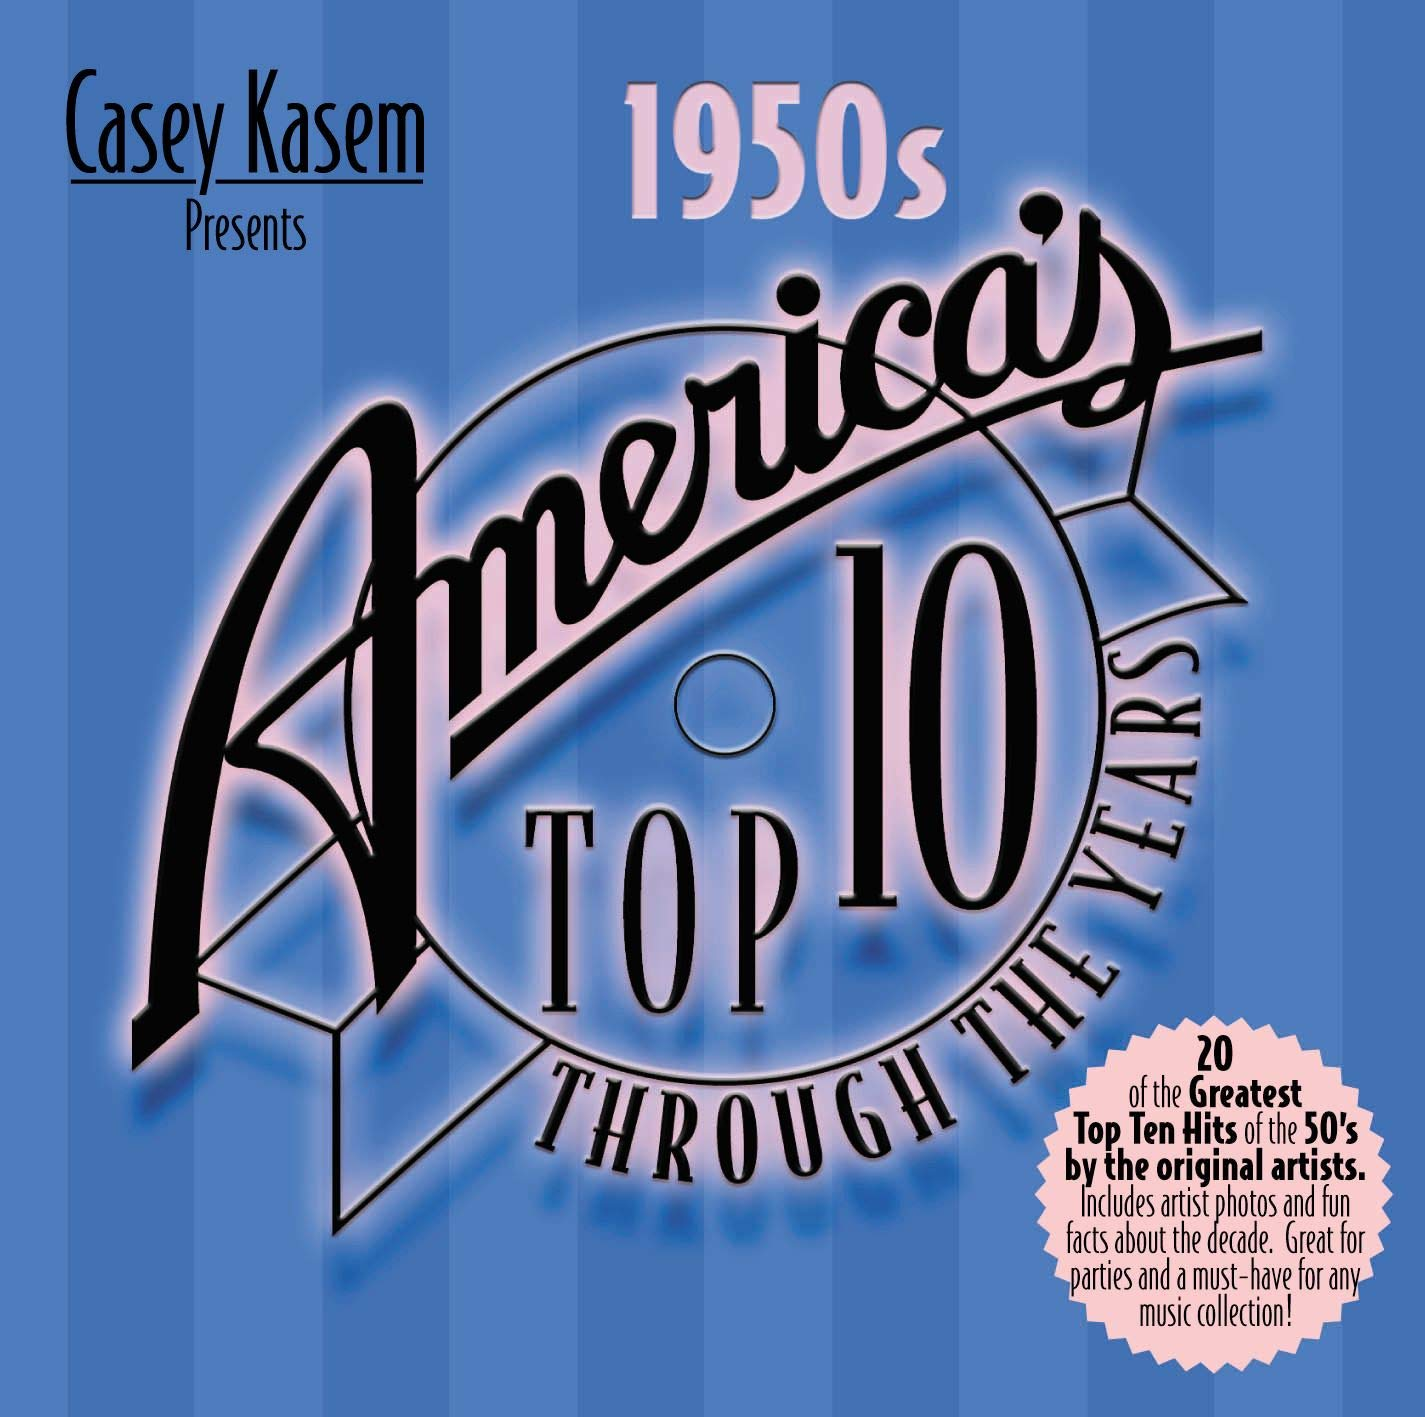 Casey Kasem Presents: America's Top 10 Through the Years - The 1950s by Top Sail Productions